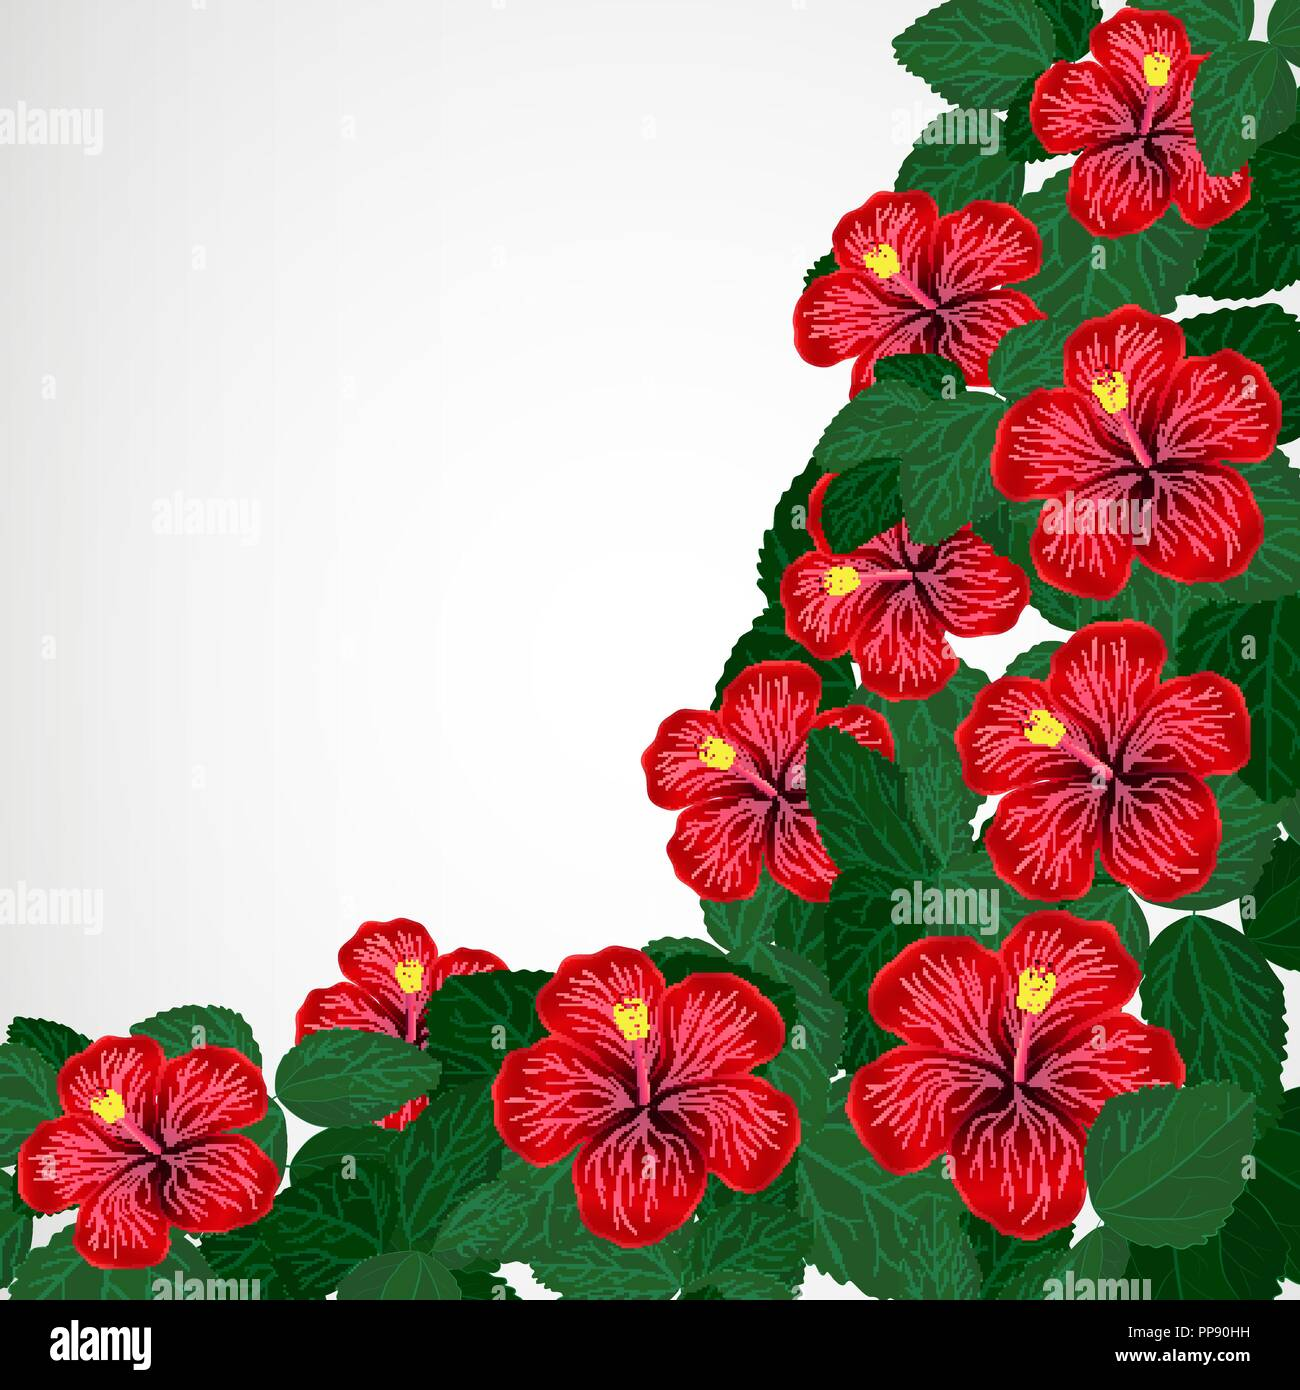 Floral Design Background Hibiscus Flowers Stock Vector Art